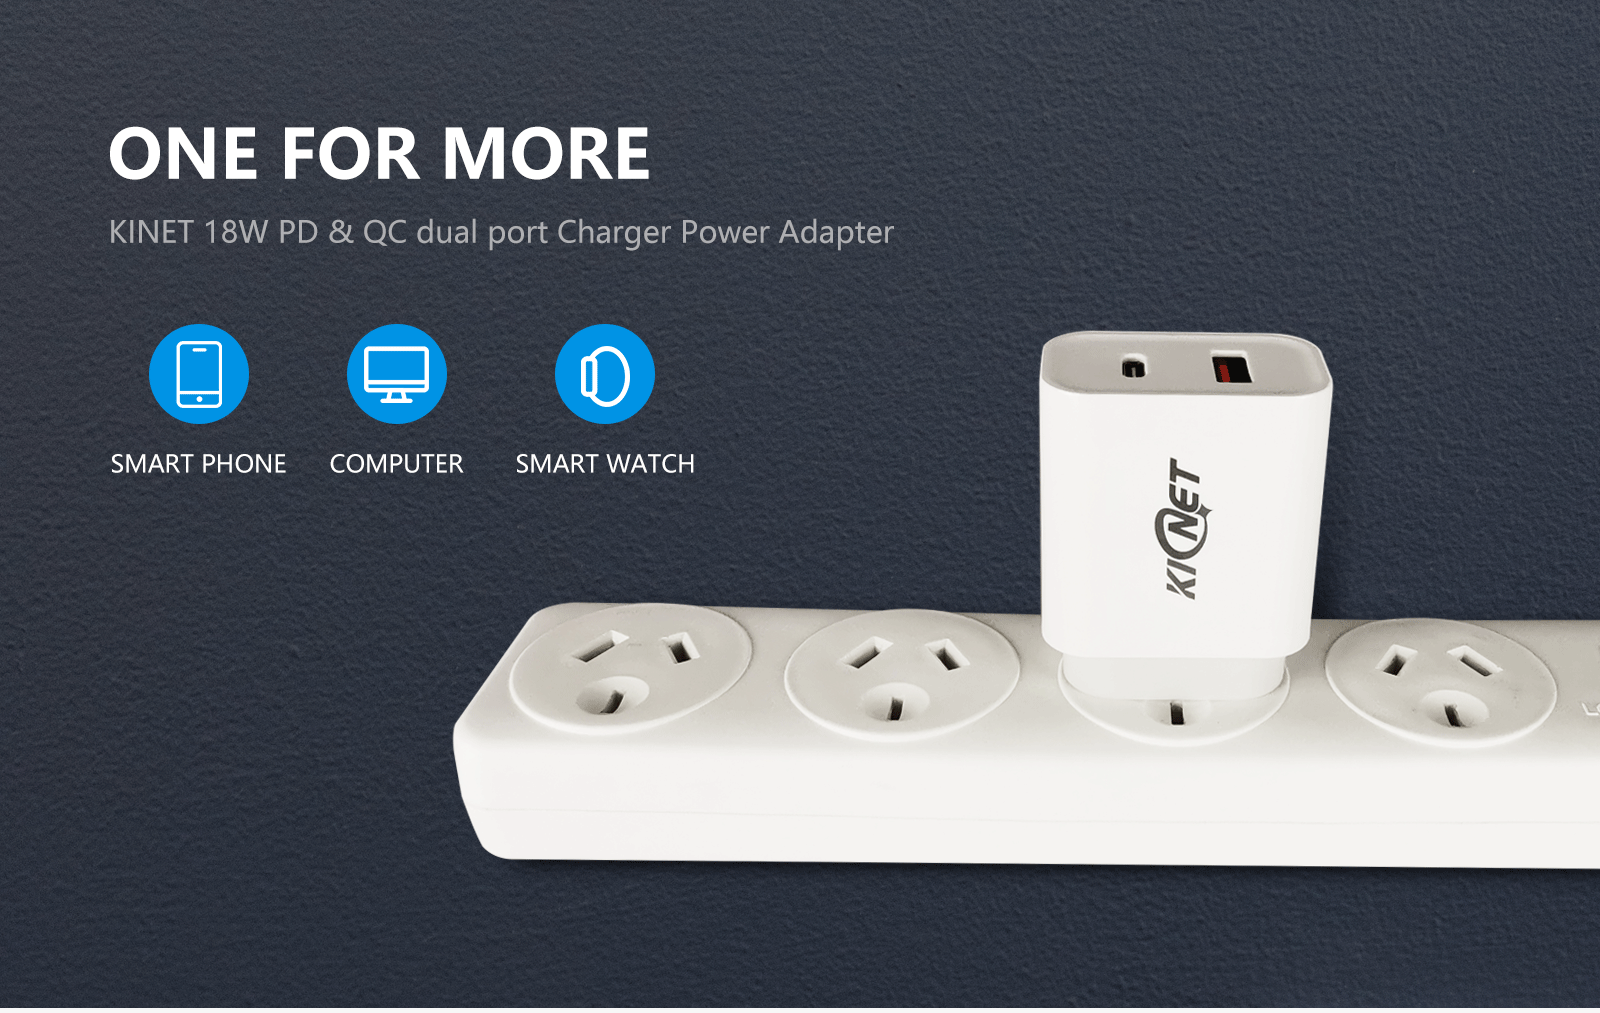 KINET 18W PD & QC dual port Charger Power Adapter